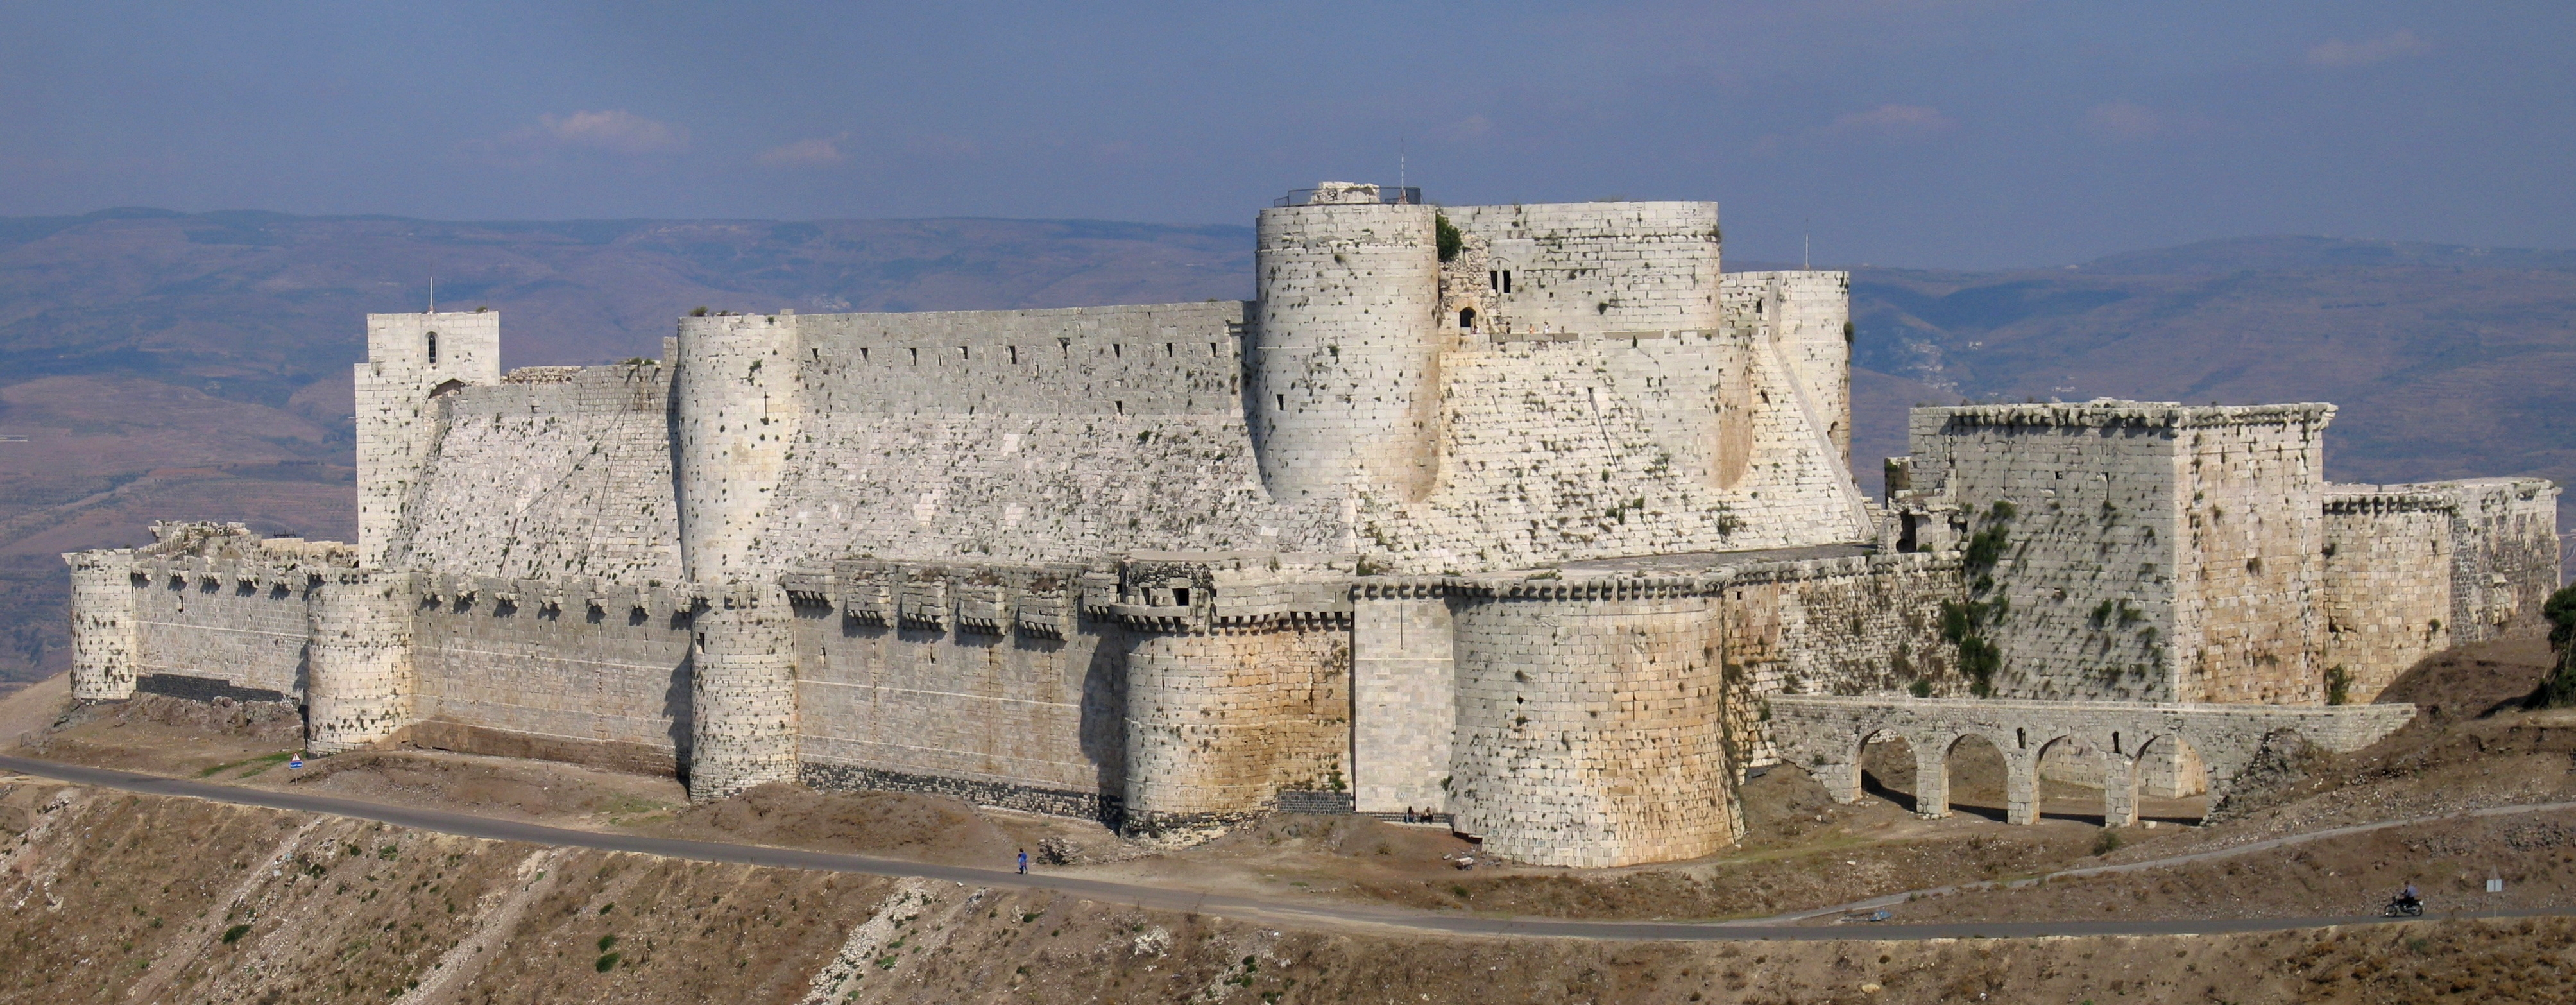 List of Crusader castles  Military Wiki  FANDOM powered ...